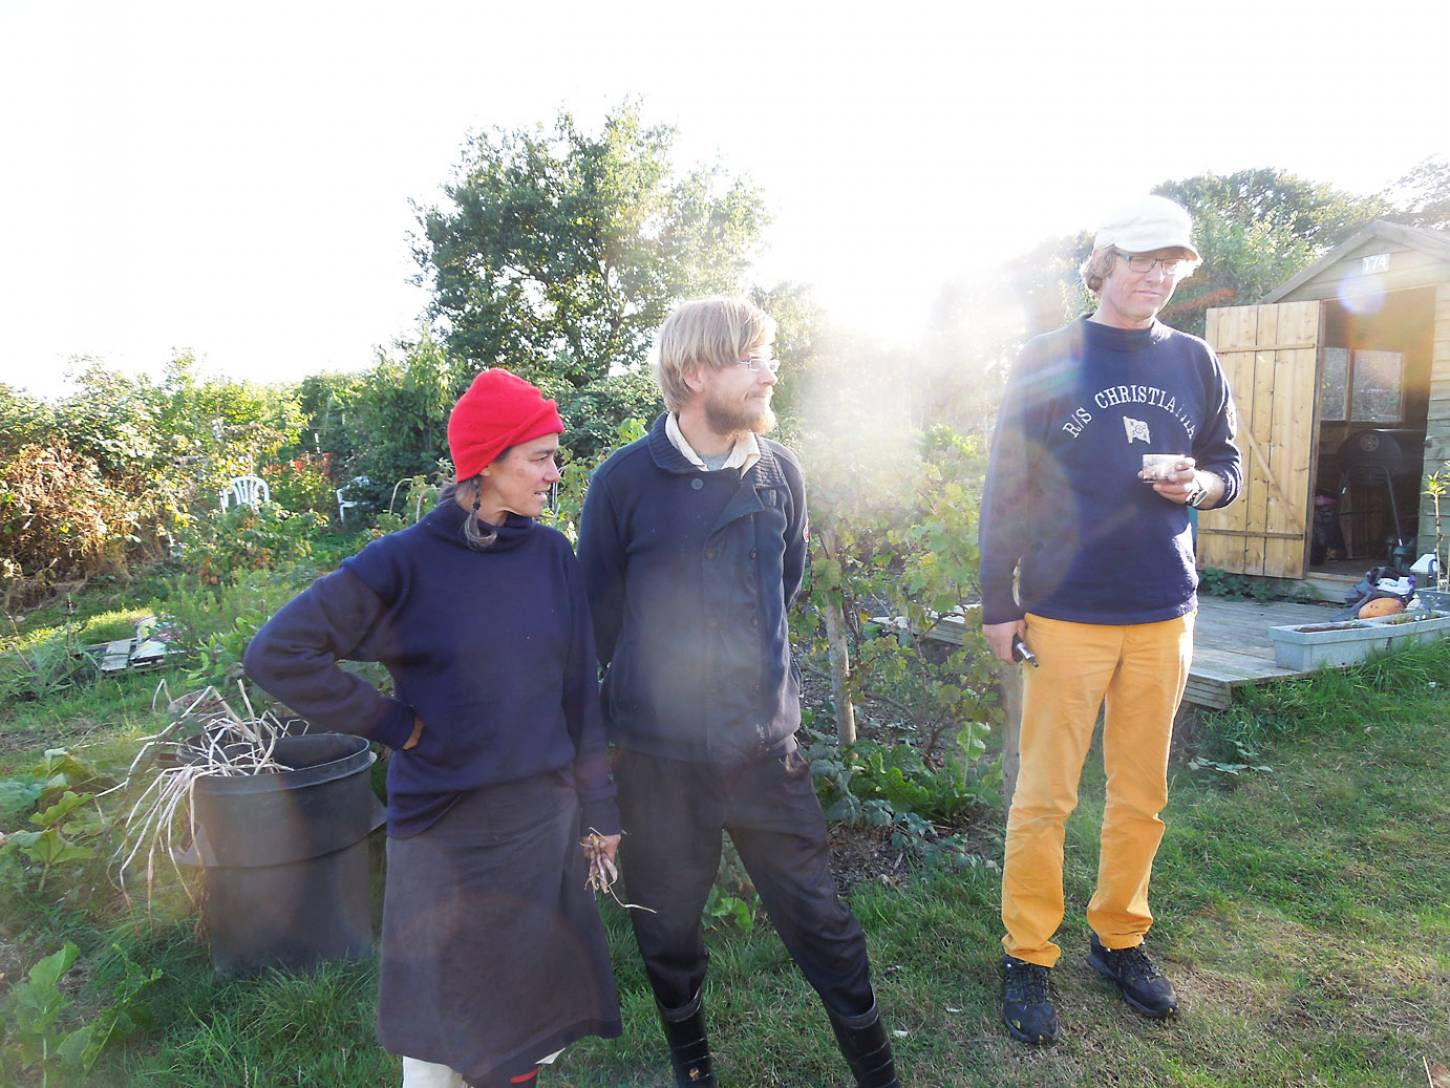 Visit of crew of Nordic seed epic voyager <a href='http://futurefarmers.com/seedjourney/' target='_blank'>RS Christiana</a> on <a href='http://www.rosendale-allotments.org.uk/' target='_blank'>RRA</a> allotment tour - 5:02pm&nbsp;2<sup>nd</sup>&nbsp;Oct.&nbsp;'16